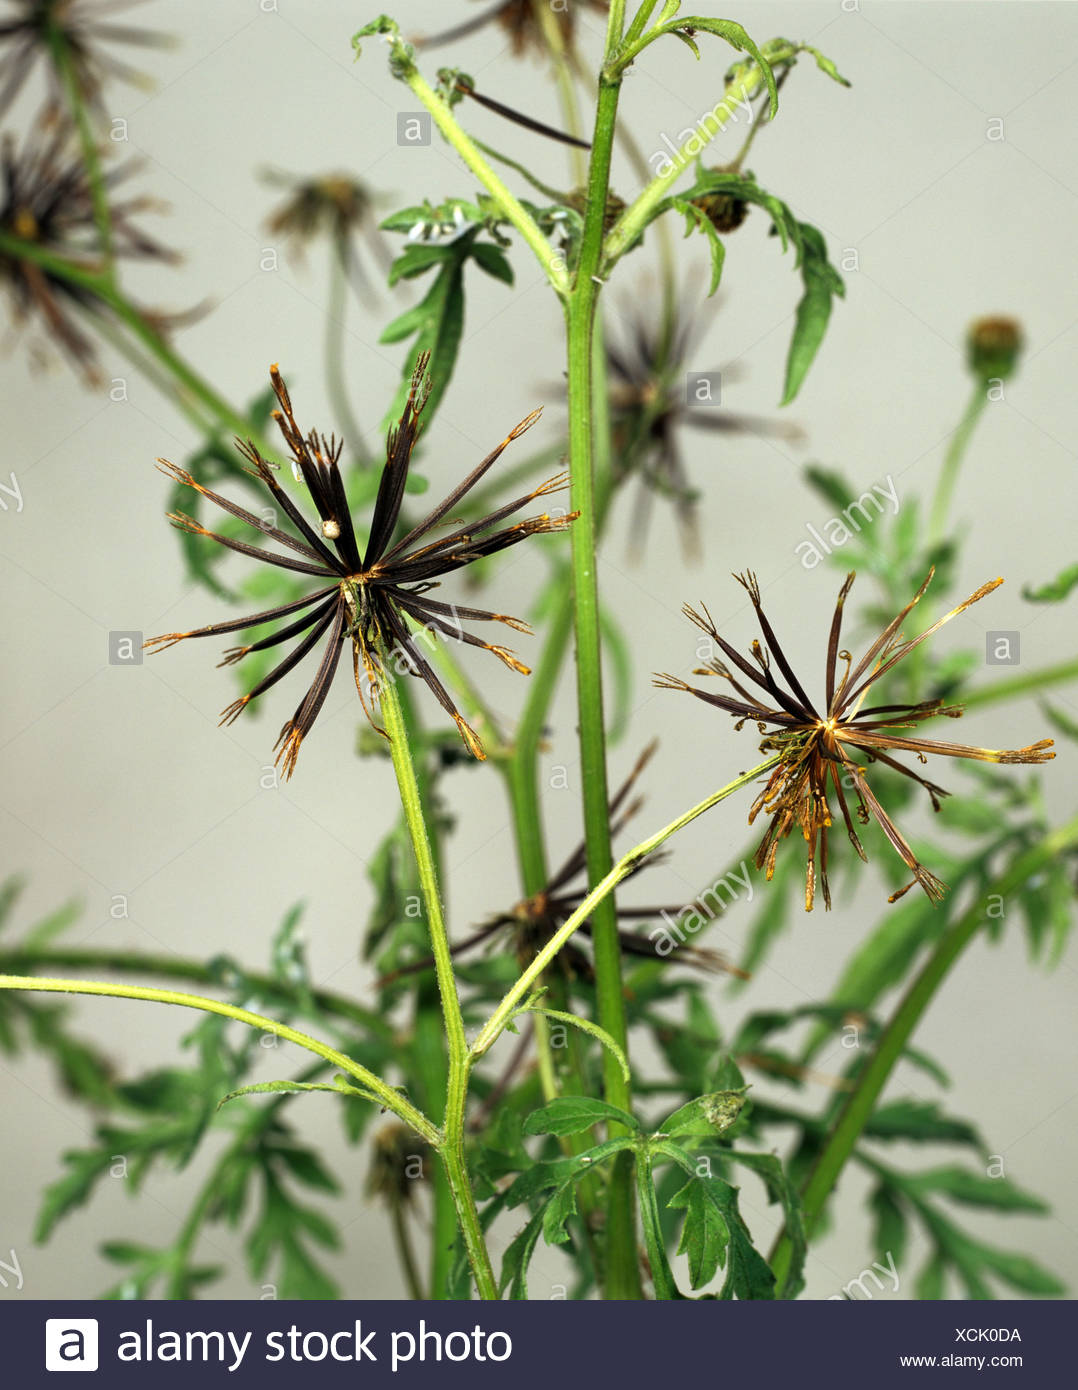 Spanish needles (Bidens bipinnata) seeding plant with spikey seedheads Stock Photo